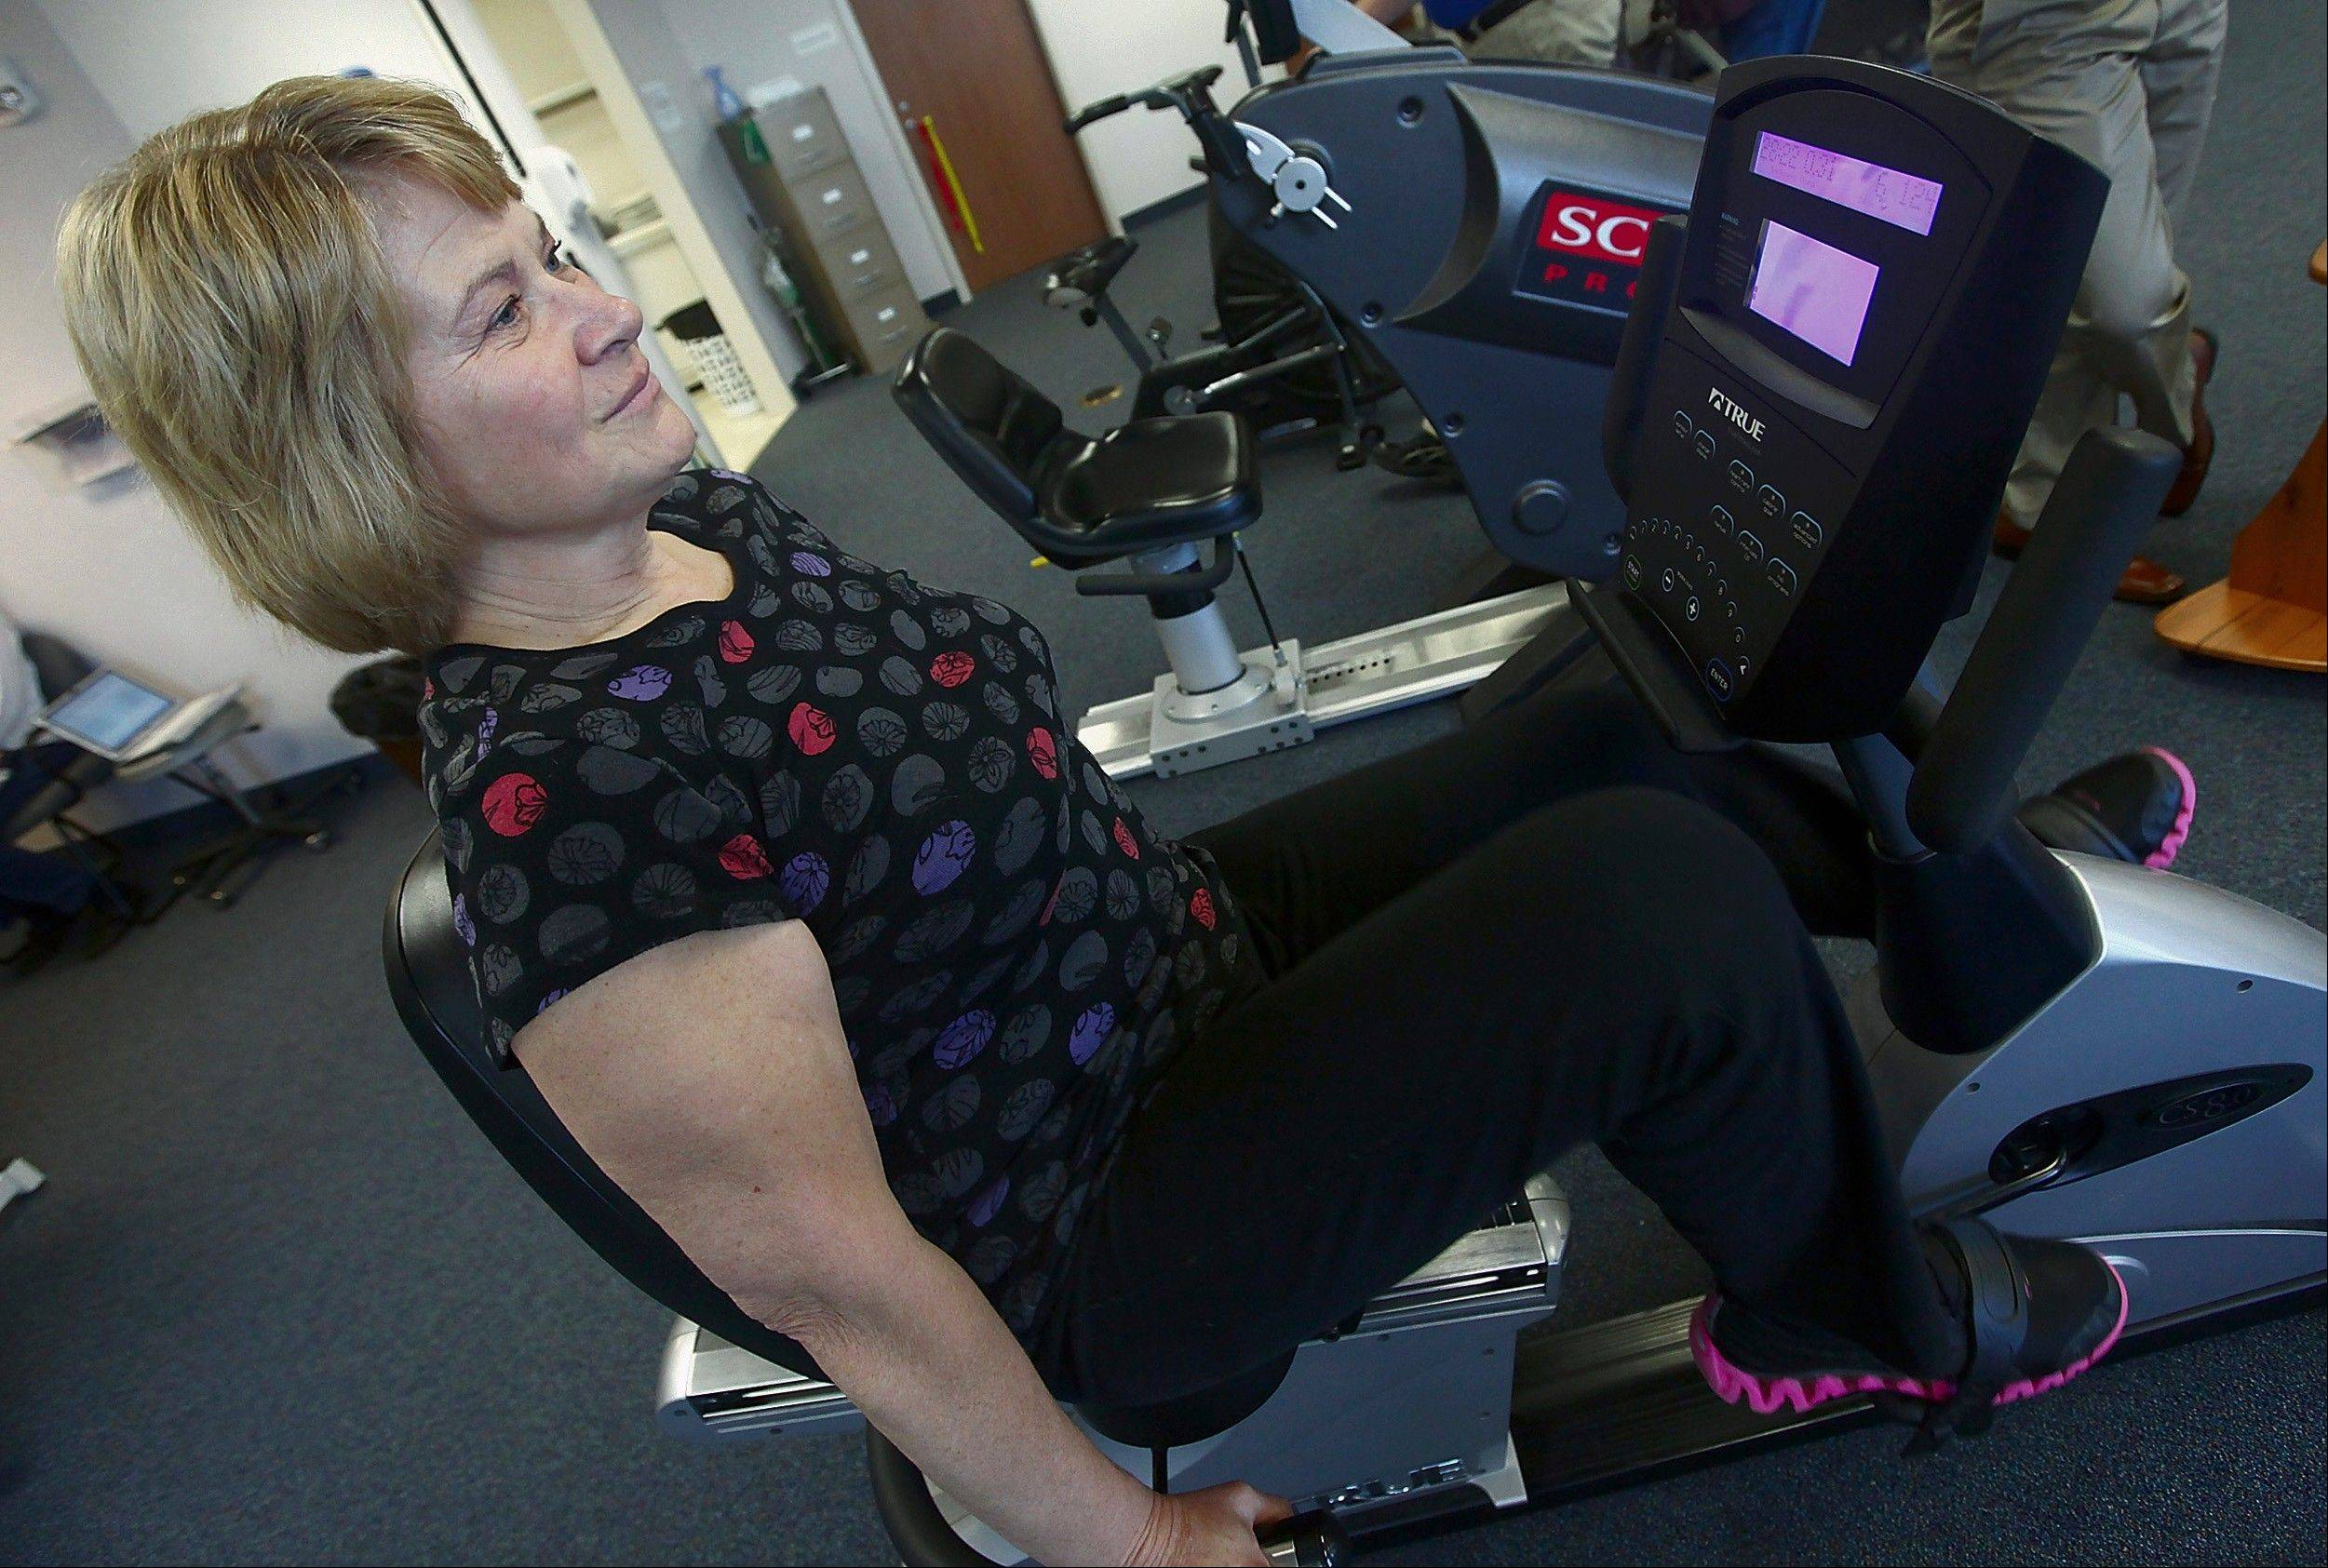 Postal carrier Nadine O'Brien, 52, who had both knees replaced six weeks ago, works out at Quincy Medical Group trying to rehab her knees to get back to her walking route with the postal service.